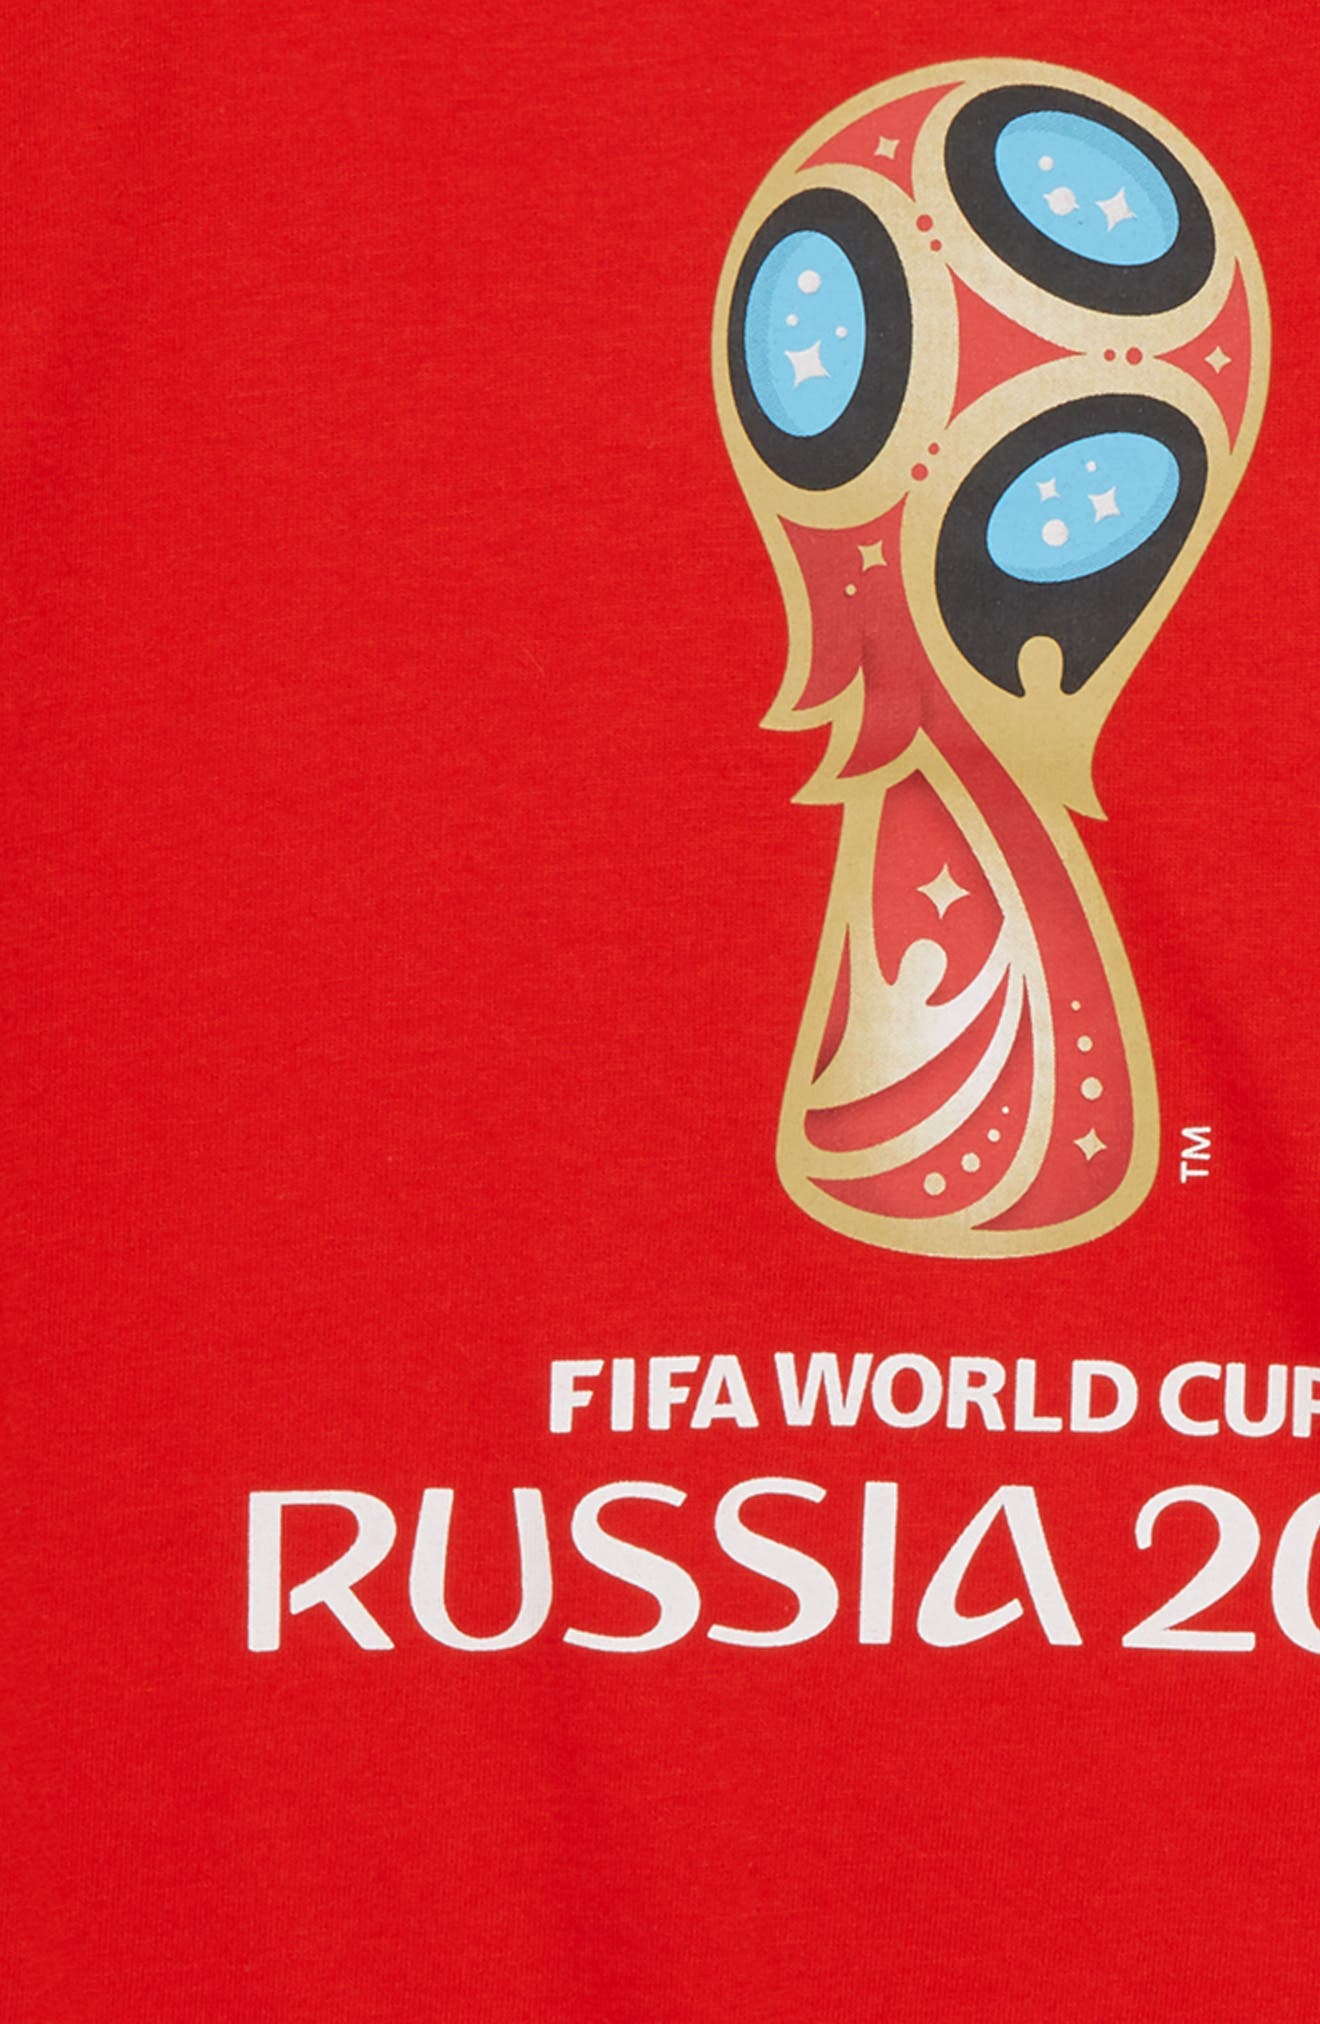 2018 FIFA World Cup Russia Soccer T-Shirt,                             Alternate thumbnail 2, color,